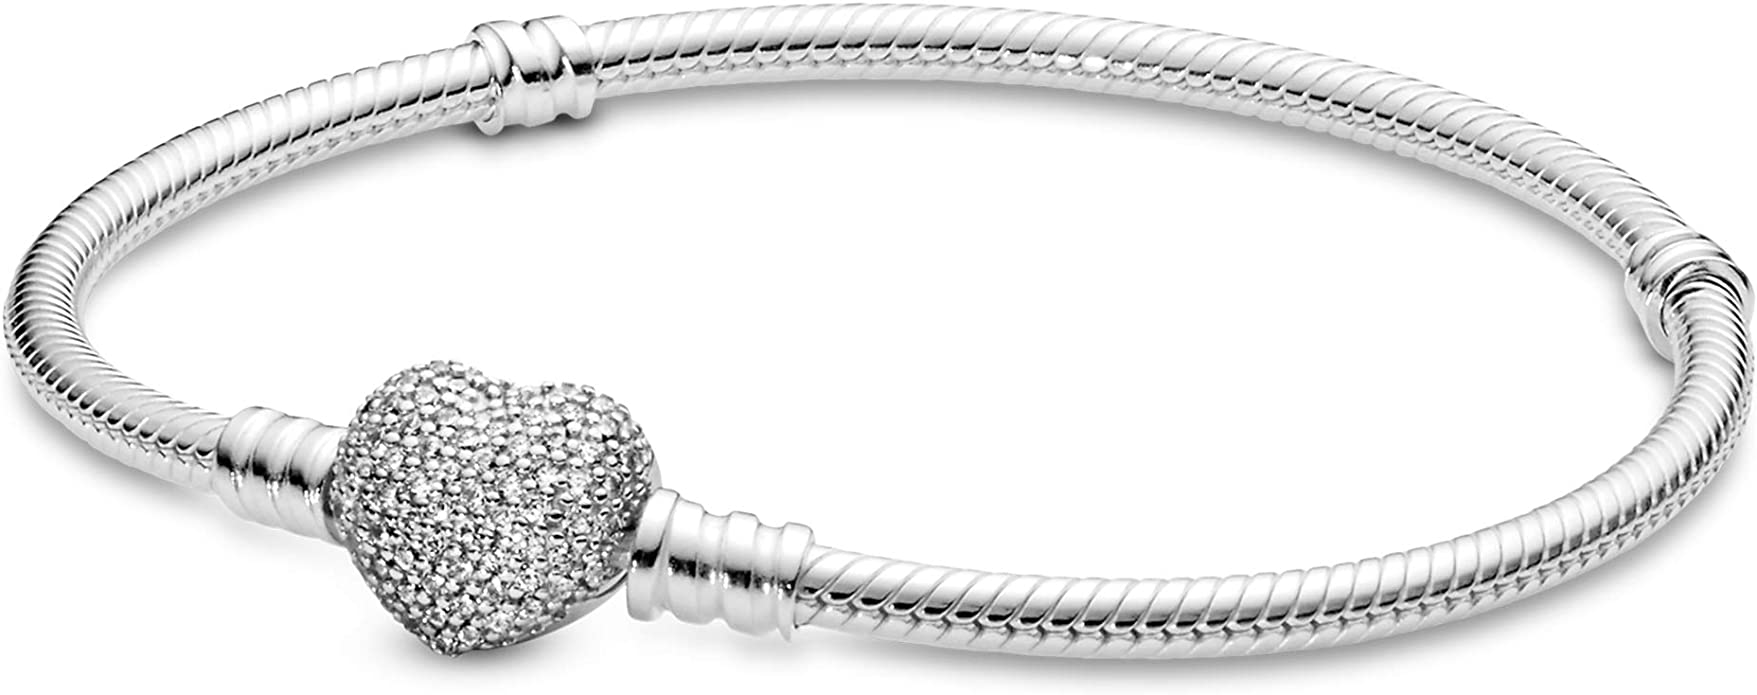 PANDORA Jewelry Moments Sparkling Heart Clasp Snake Chain Charm Cubic  Zirconia Bracelet in Sterling Silver